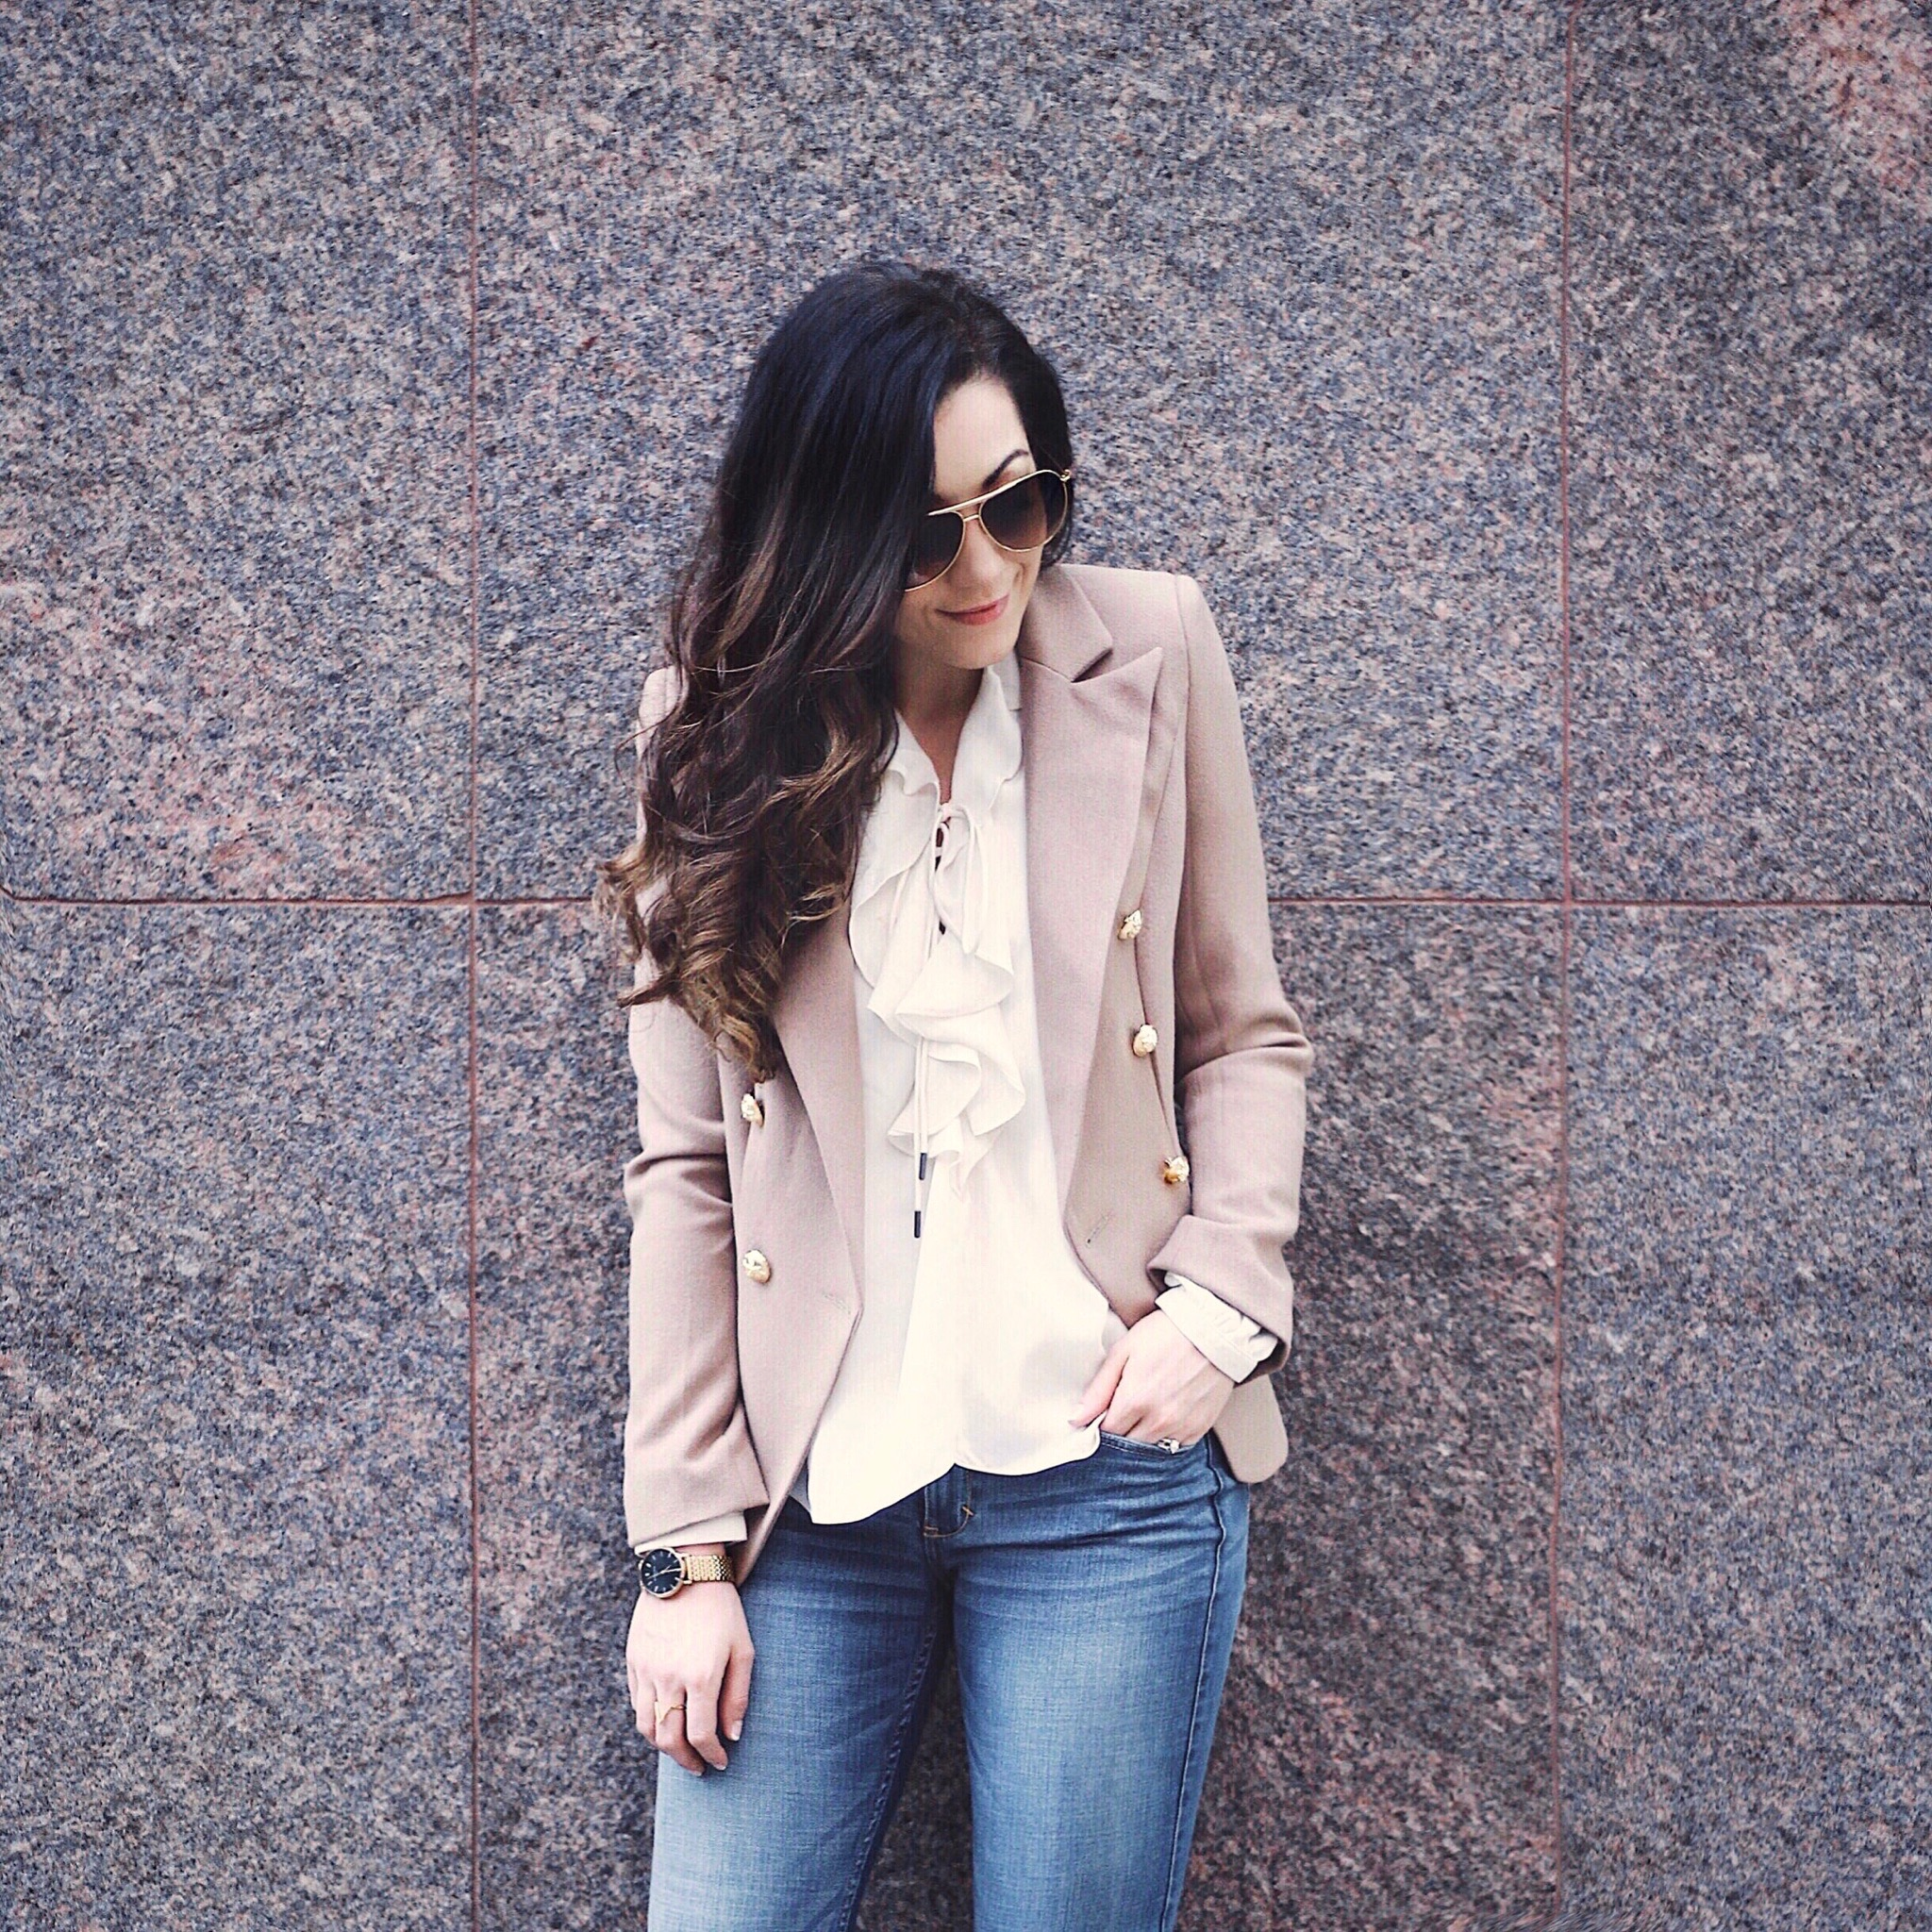 Feminine meets Masculine, a blending of styles and some thoughts | Revolve Lioness Blush Blazer, Abercrombie & Fitch Jeans, Steve Madden Pumps, L'Academie Cream Ruffled Top, Rosefield Watch